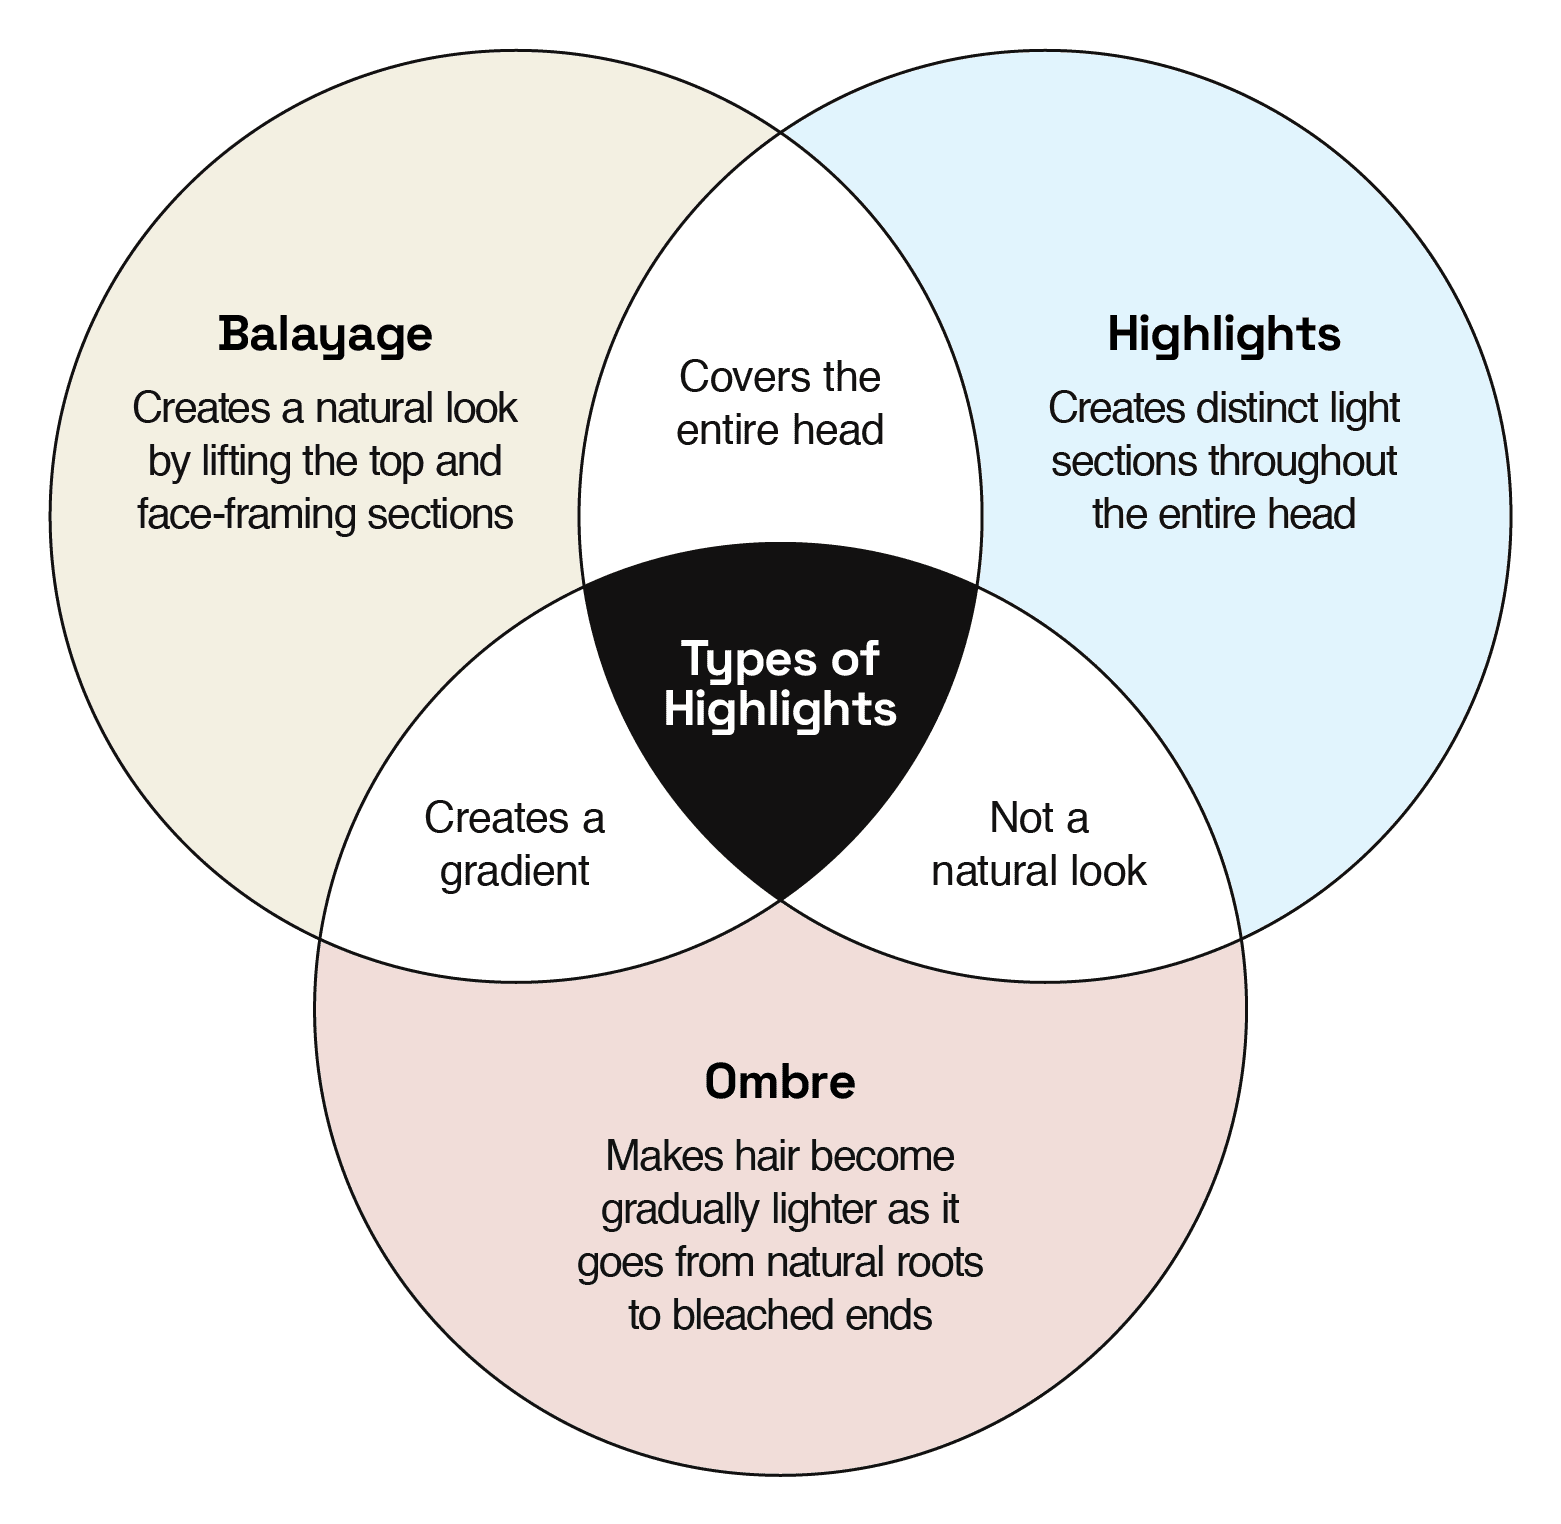 ven diagram comparing balayage, highlights, and ombre